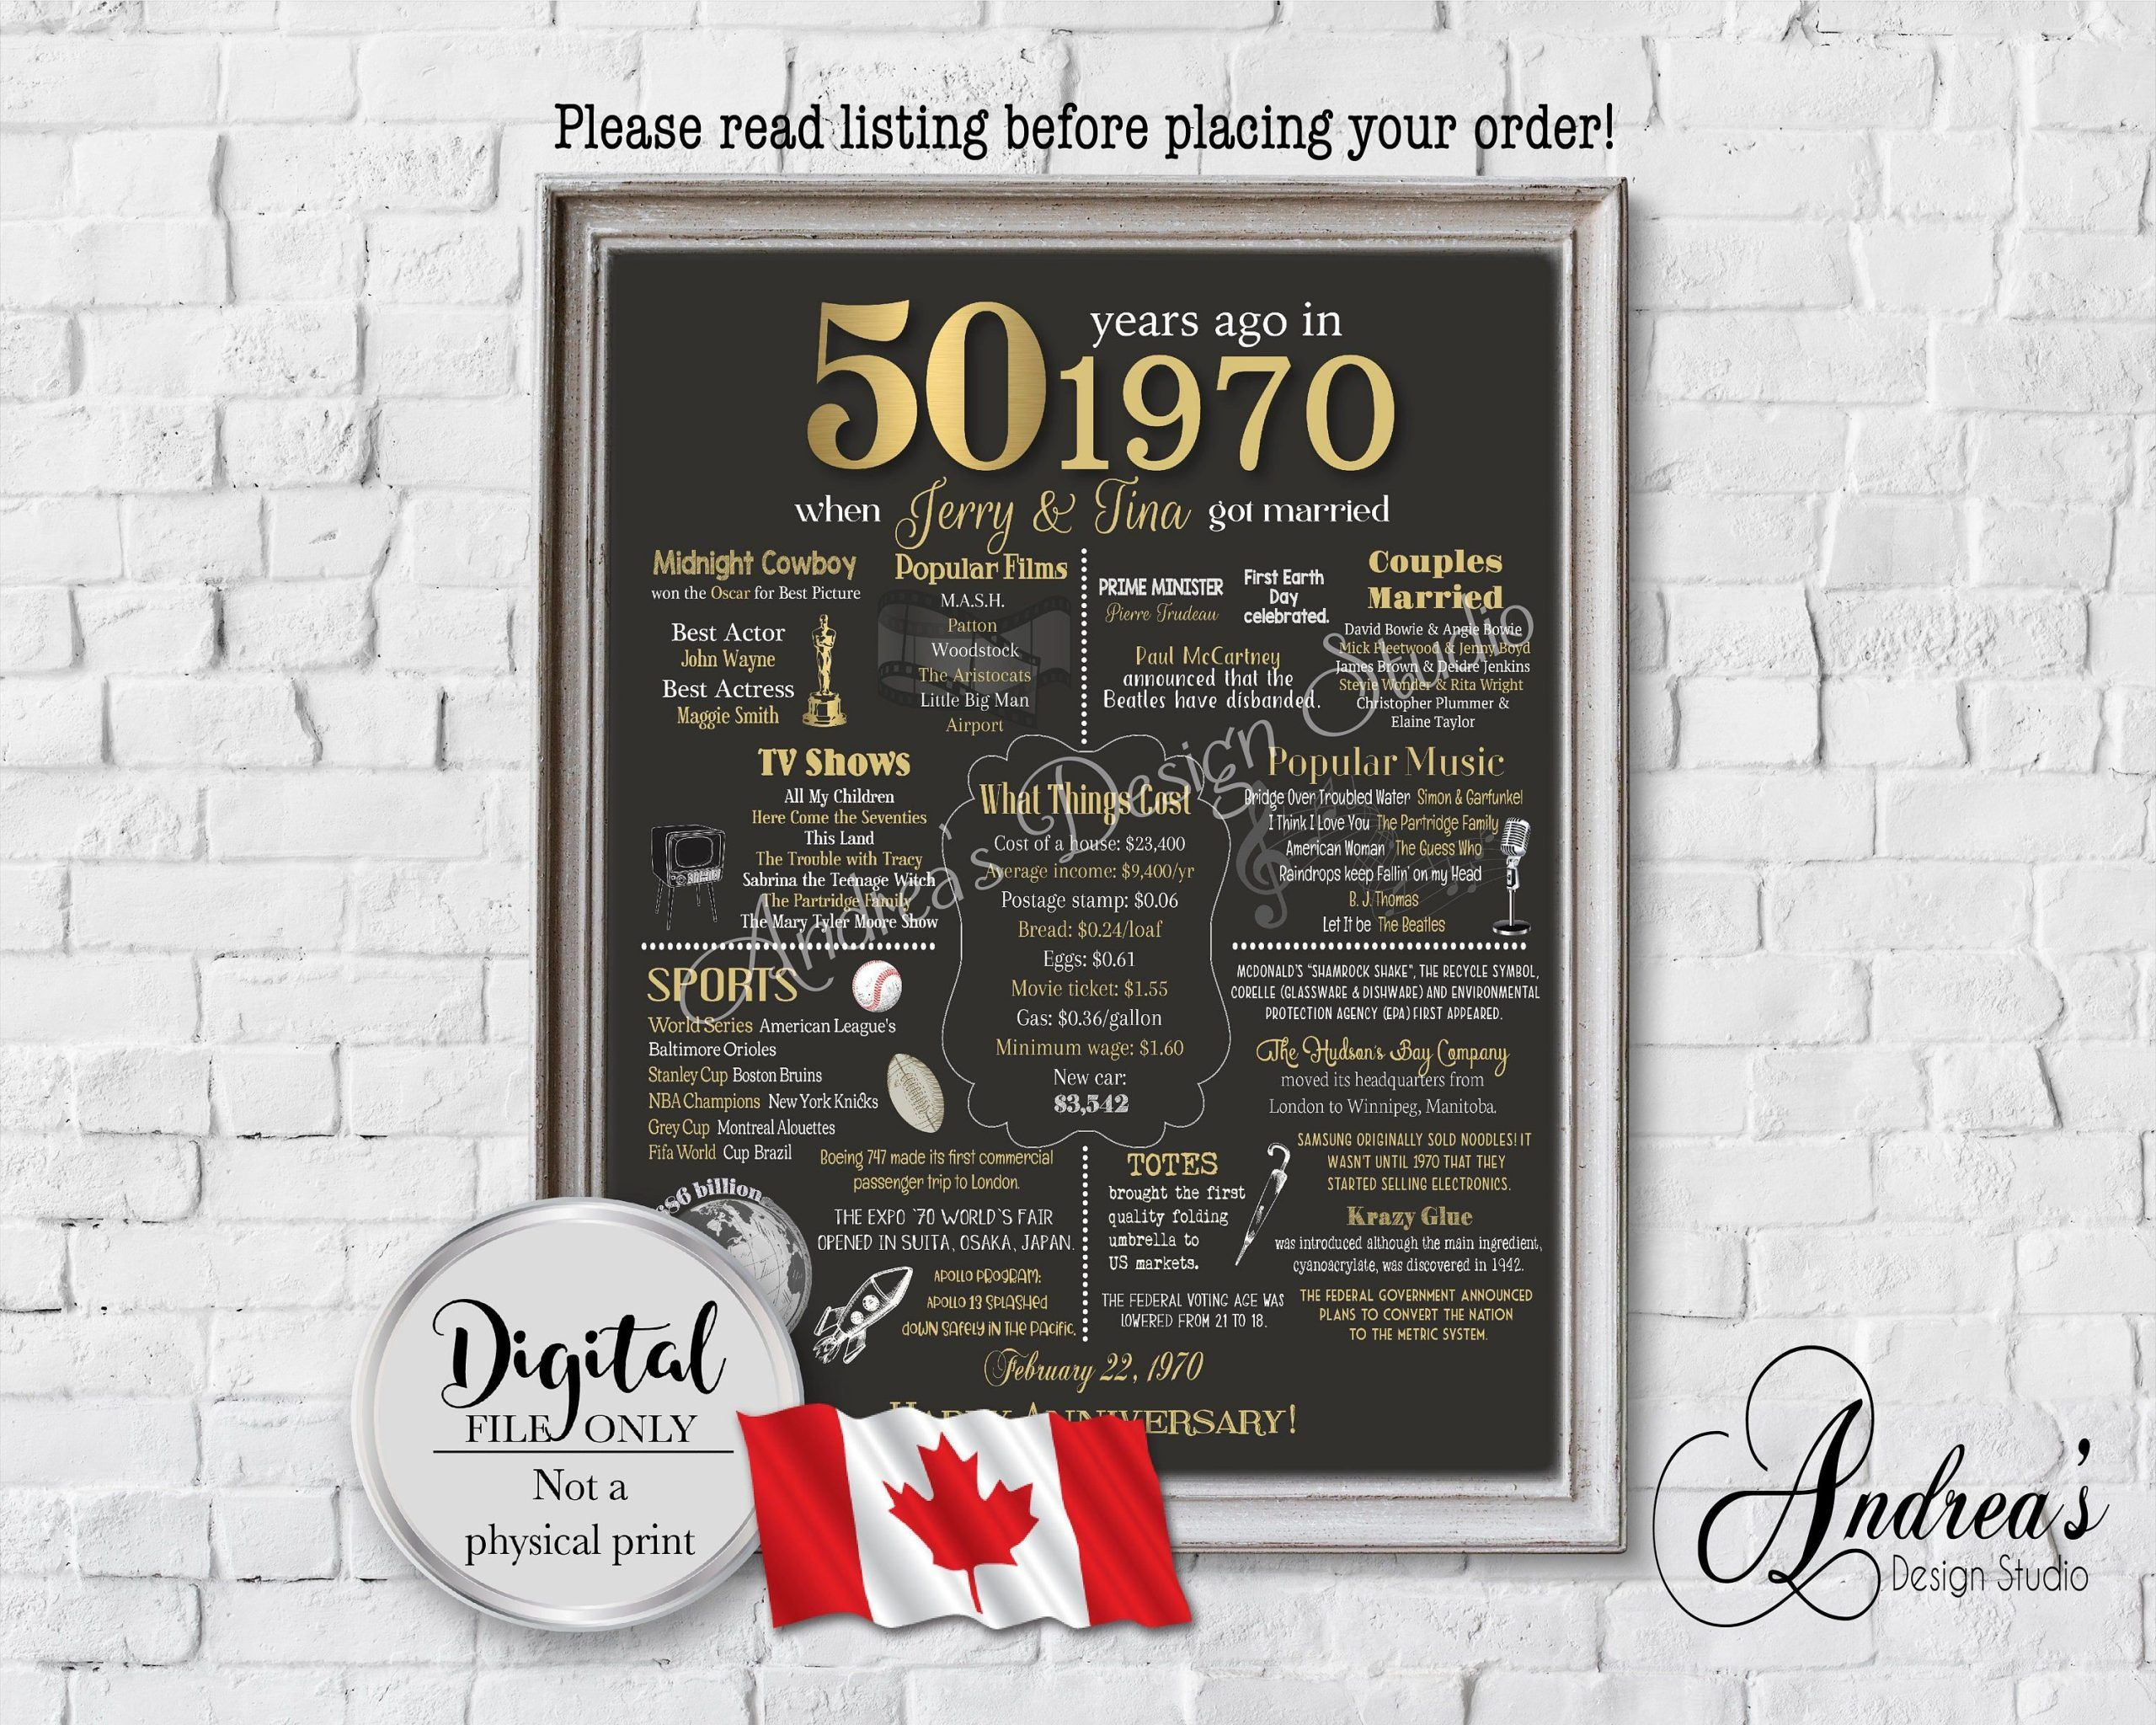 Personalized 50th Anniversary Chalkboard Poster Design, 1970 Events & Fun Facts, 50th Anniversary Gift, Canadian Version, Digital Files#50th #anniversary #canadian #chalkboard #design #digital #events #facts #files #fun #gift #personalized #poster #version